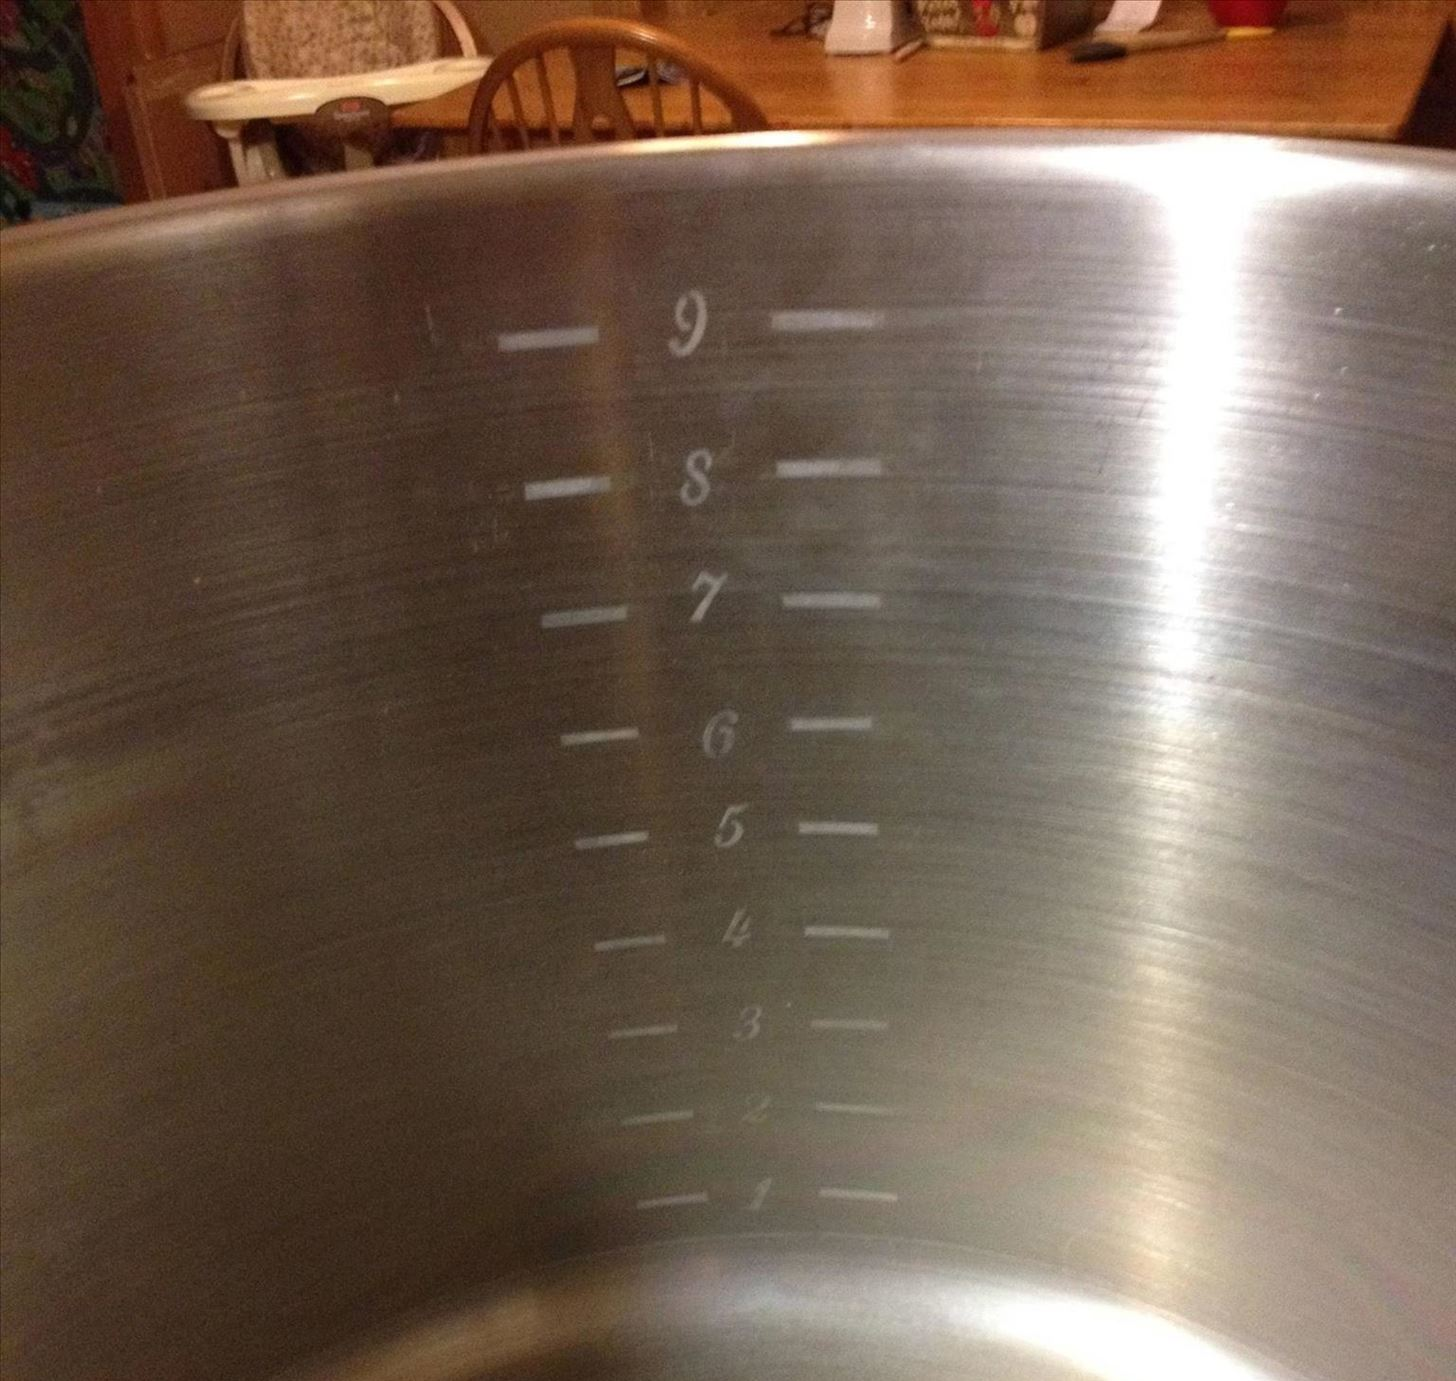 How to Etch Permanent Volume Markers into Your Cooking Pots Using Salt & Vinegar